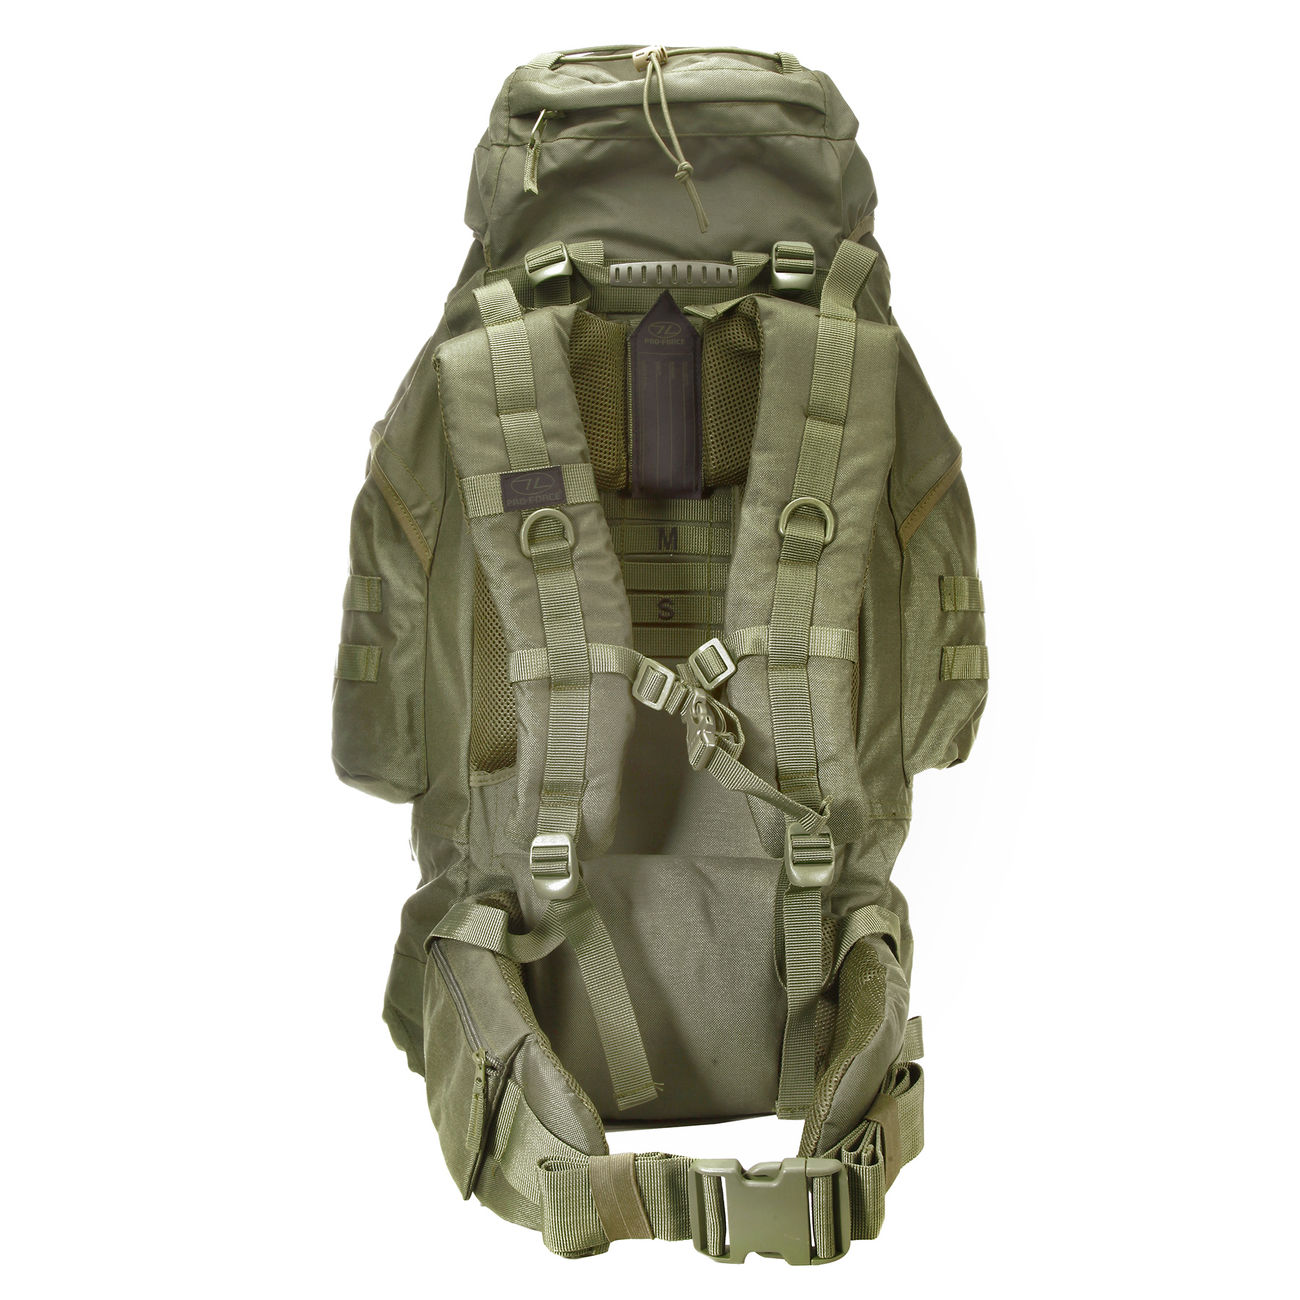 Highlander Rucksack Modell New Forces 66 Liter oliv 3